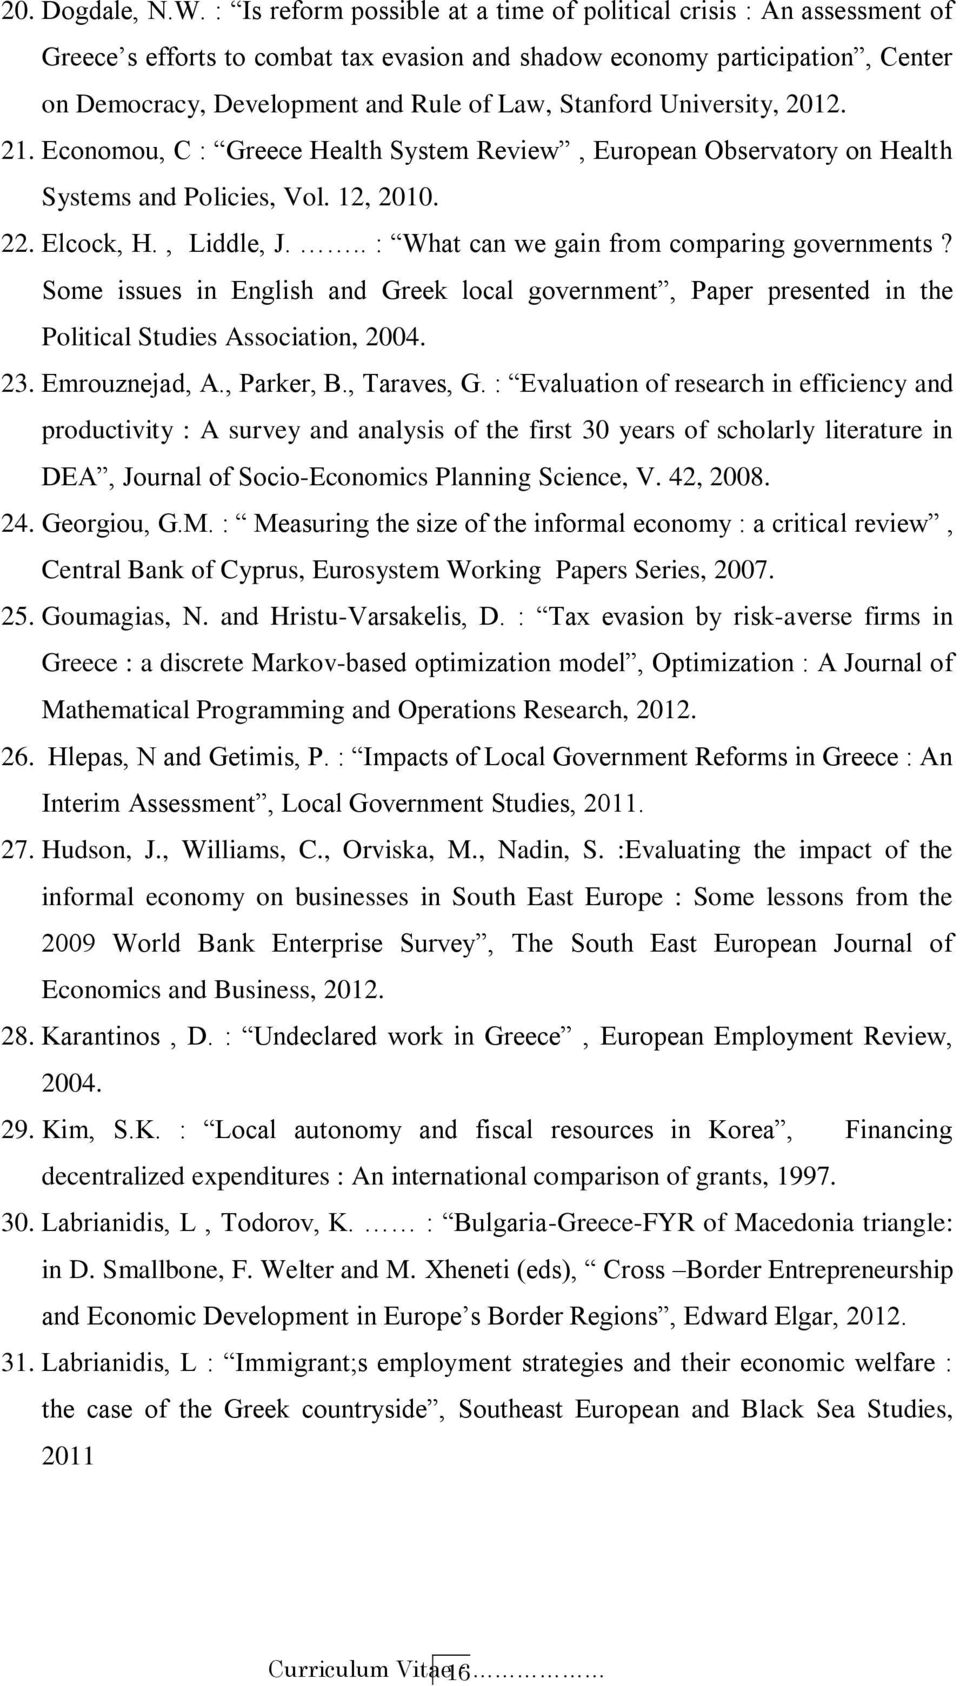 Stanford University, 2012. 21. Economou, C : Greece Health System Review, European Observatory on Health Systems and Policies, Vol. 12, 2010. 22. Elcock, H., Liddle, J.